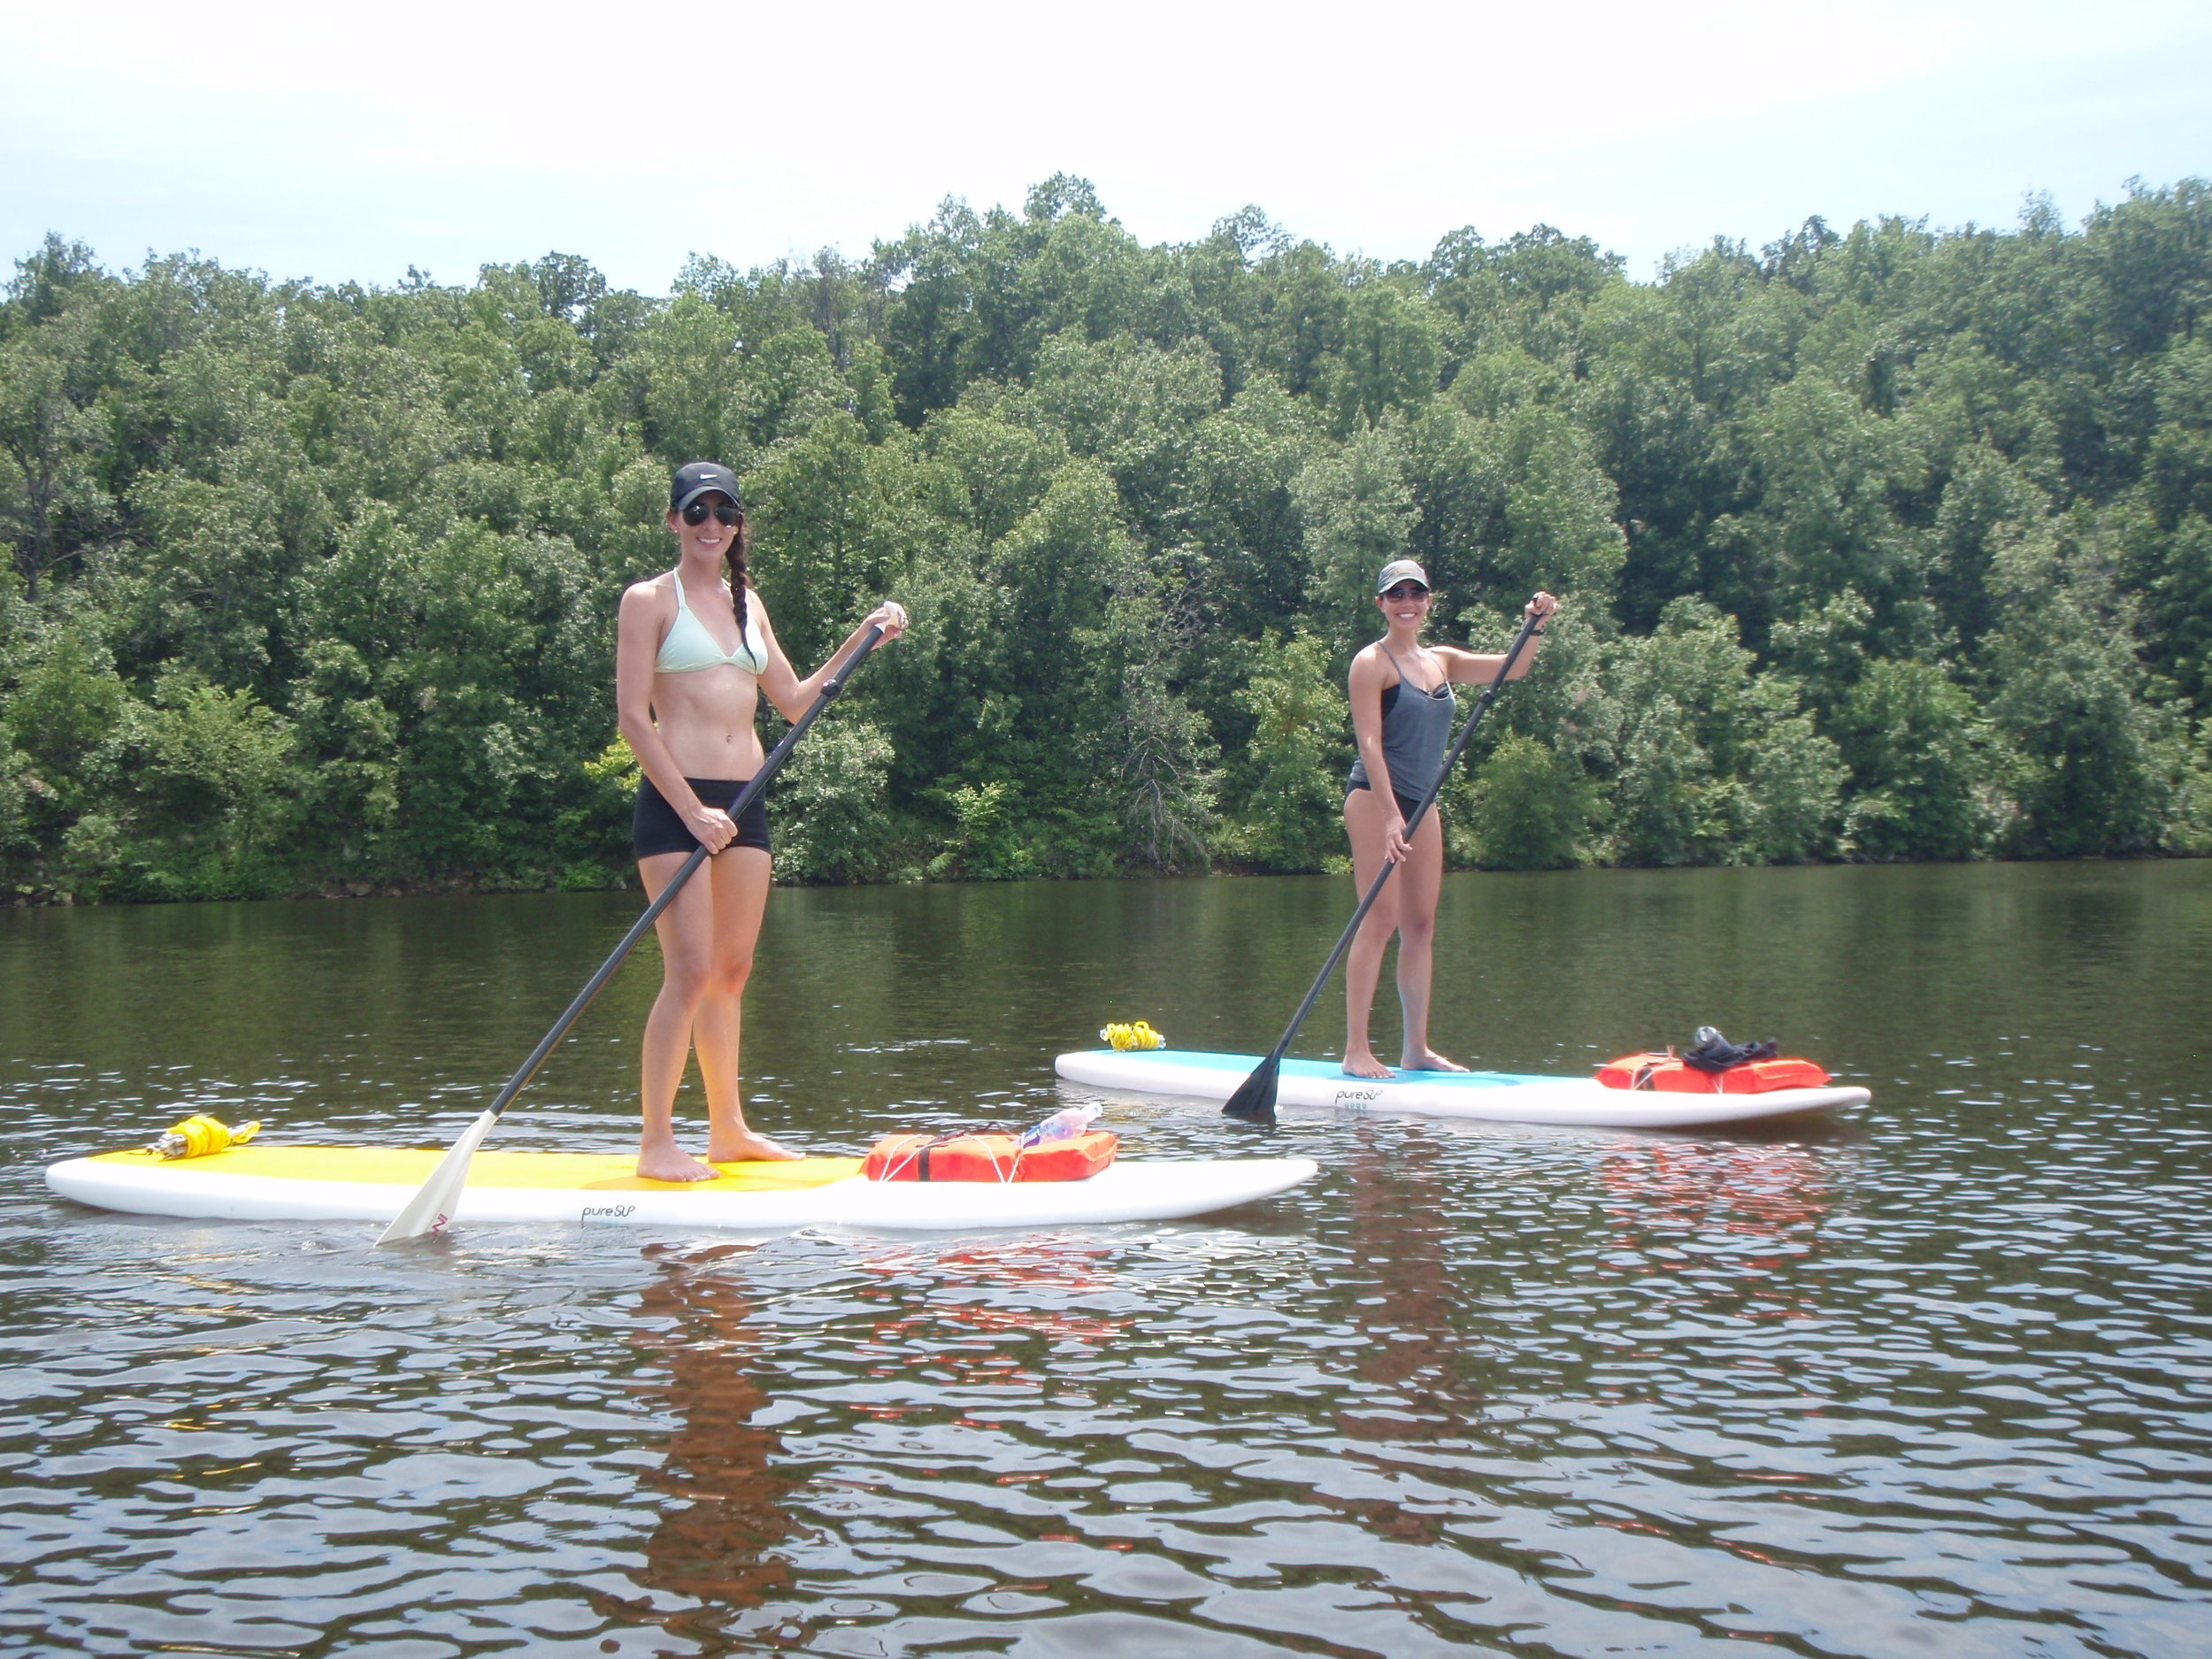 SUP Basics & Tour - Learn the basics of Standup Paddleboarding & take a tour of beautiful Shell Lake.  Great for all paddlers, beginners and pros, develop and improve your paddling skills.